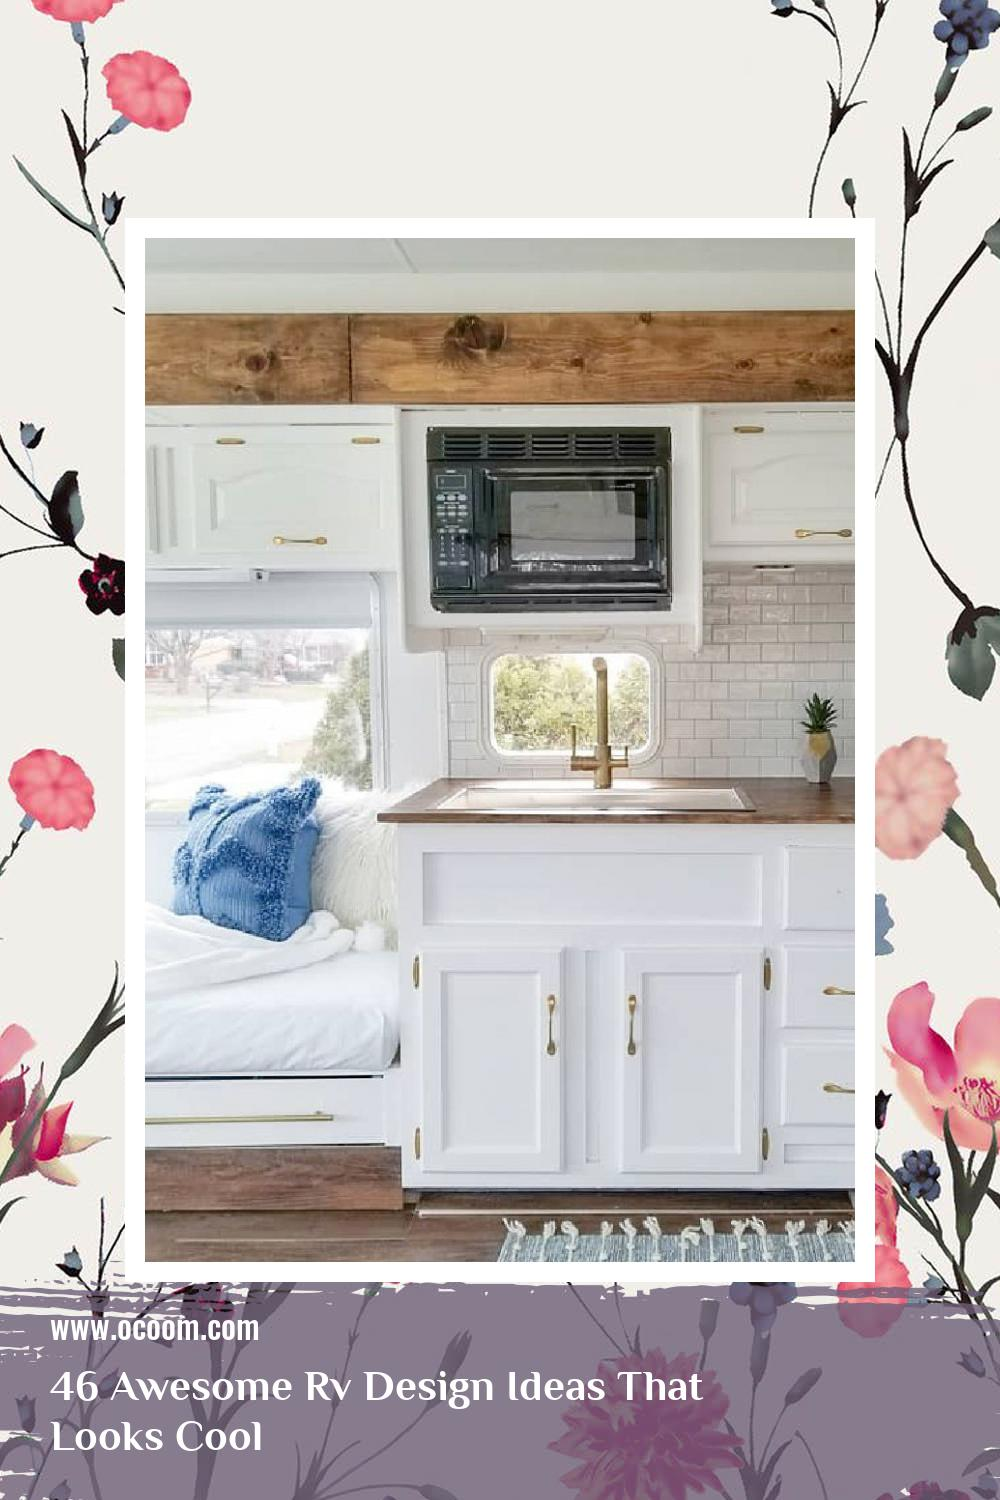 46 Awesome Rv Design Ideas That Looks Cool 3